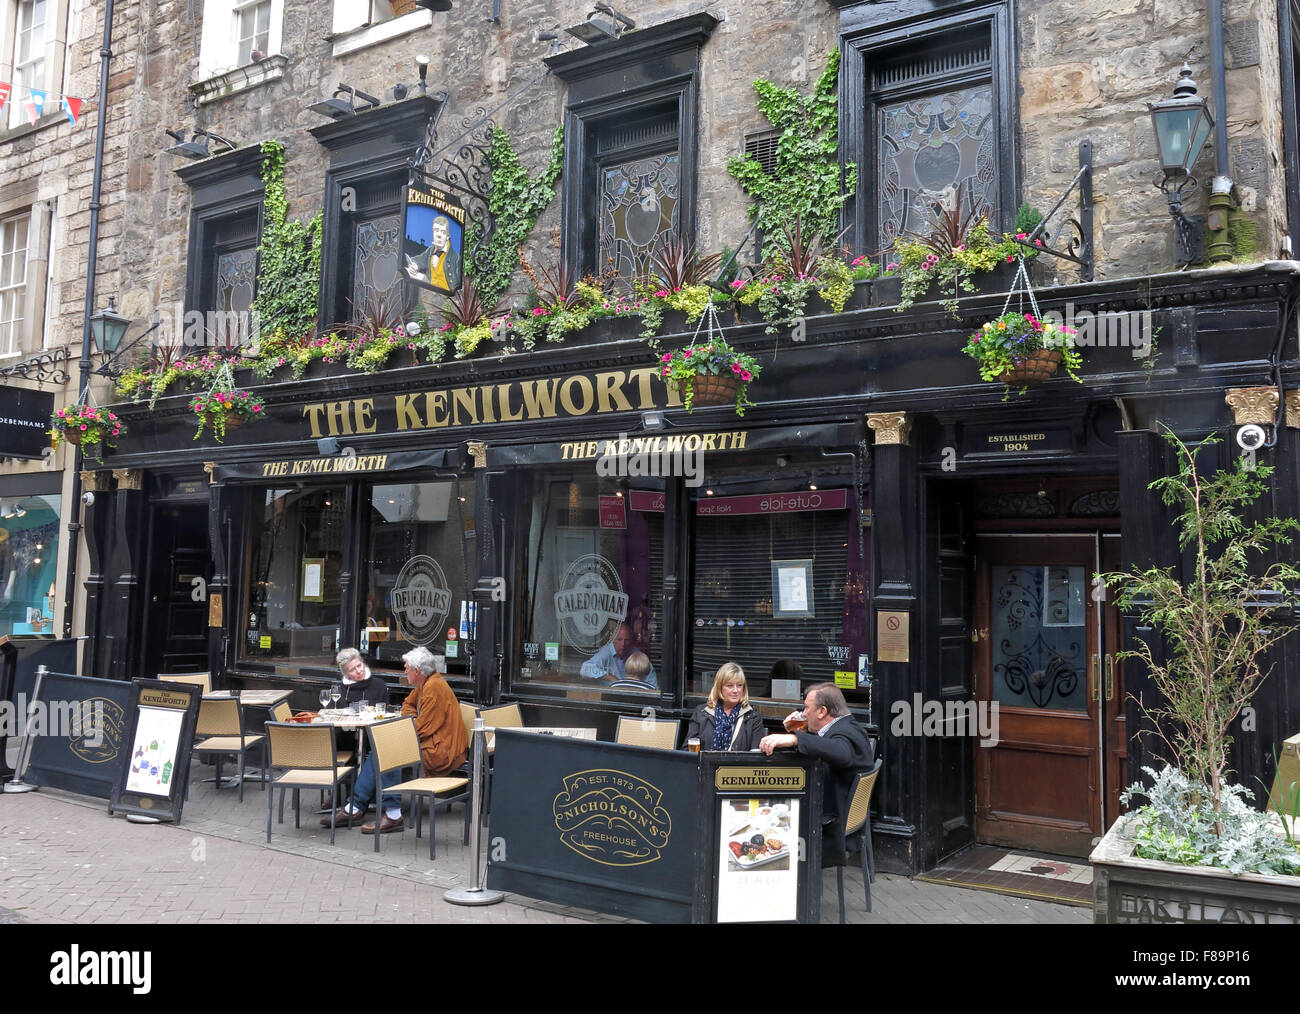 Pubs,stag,night,hen,nights,location,for,area,EDN,narrow,new,pedestrian,pedestrianised,scottish,shopping,st,street,town,Kenilworth,Nicholson,Nicholsons,rose street,Rose st,The Kenilworth,GoTonySmith,drinking,culture,alcoholism,alcoholics,AA,outside,street,history,historic,Buy Pictures of,Buy Images Of,Edinburgh Pubs,Edinburgh Pub